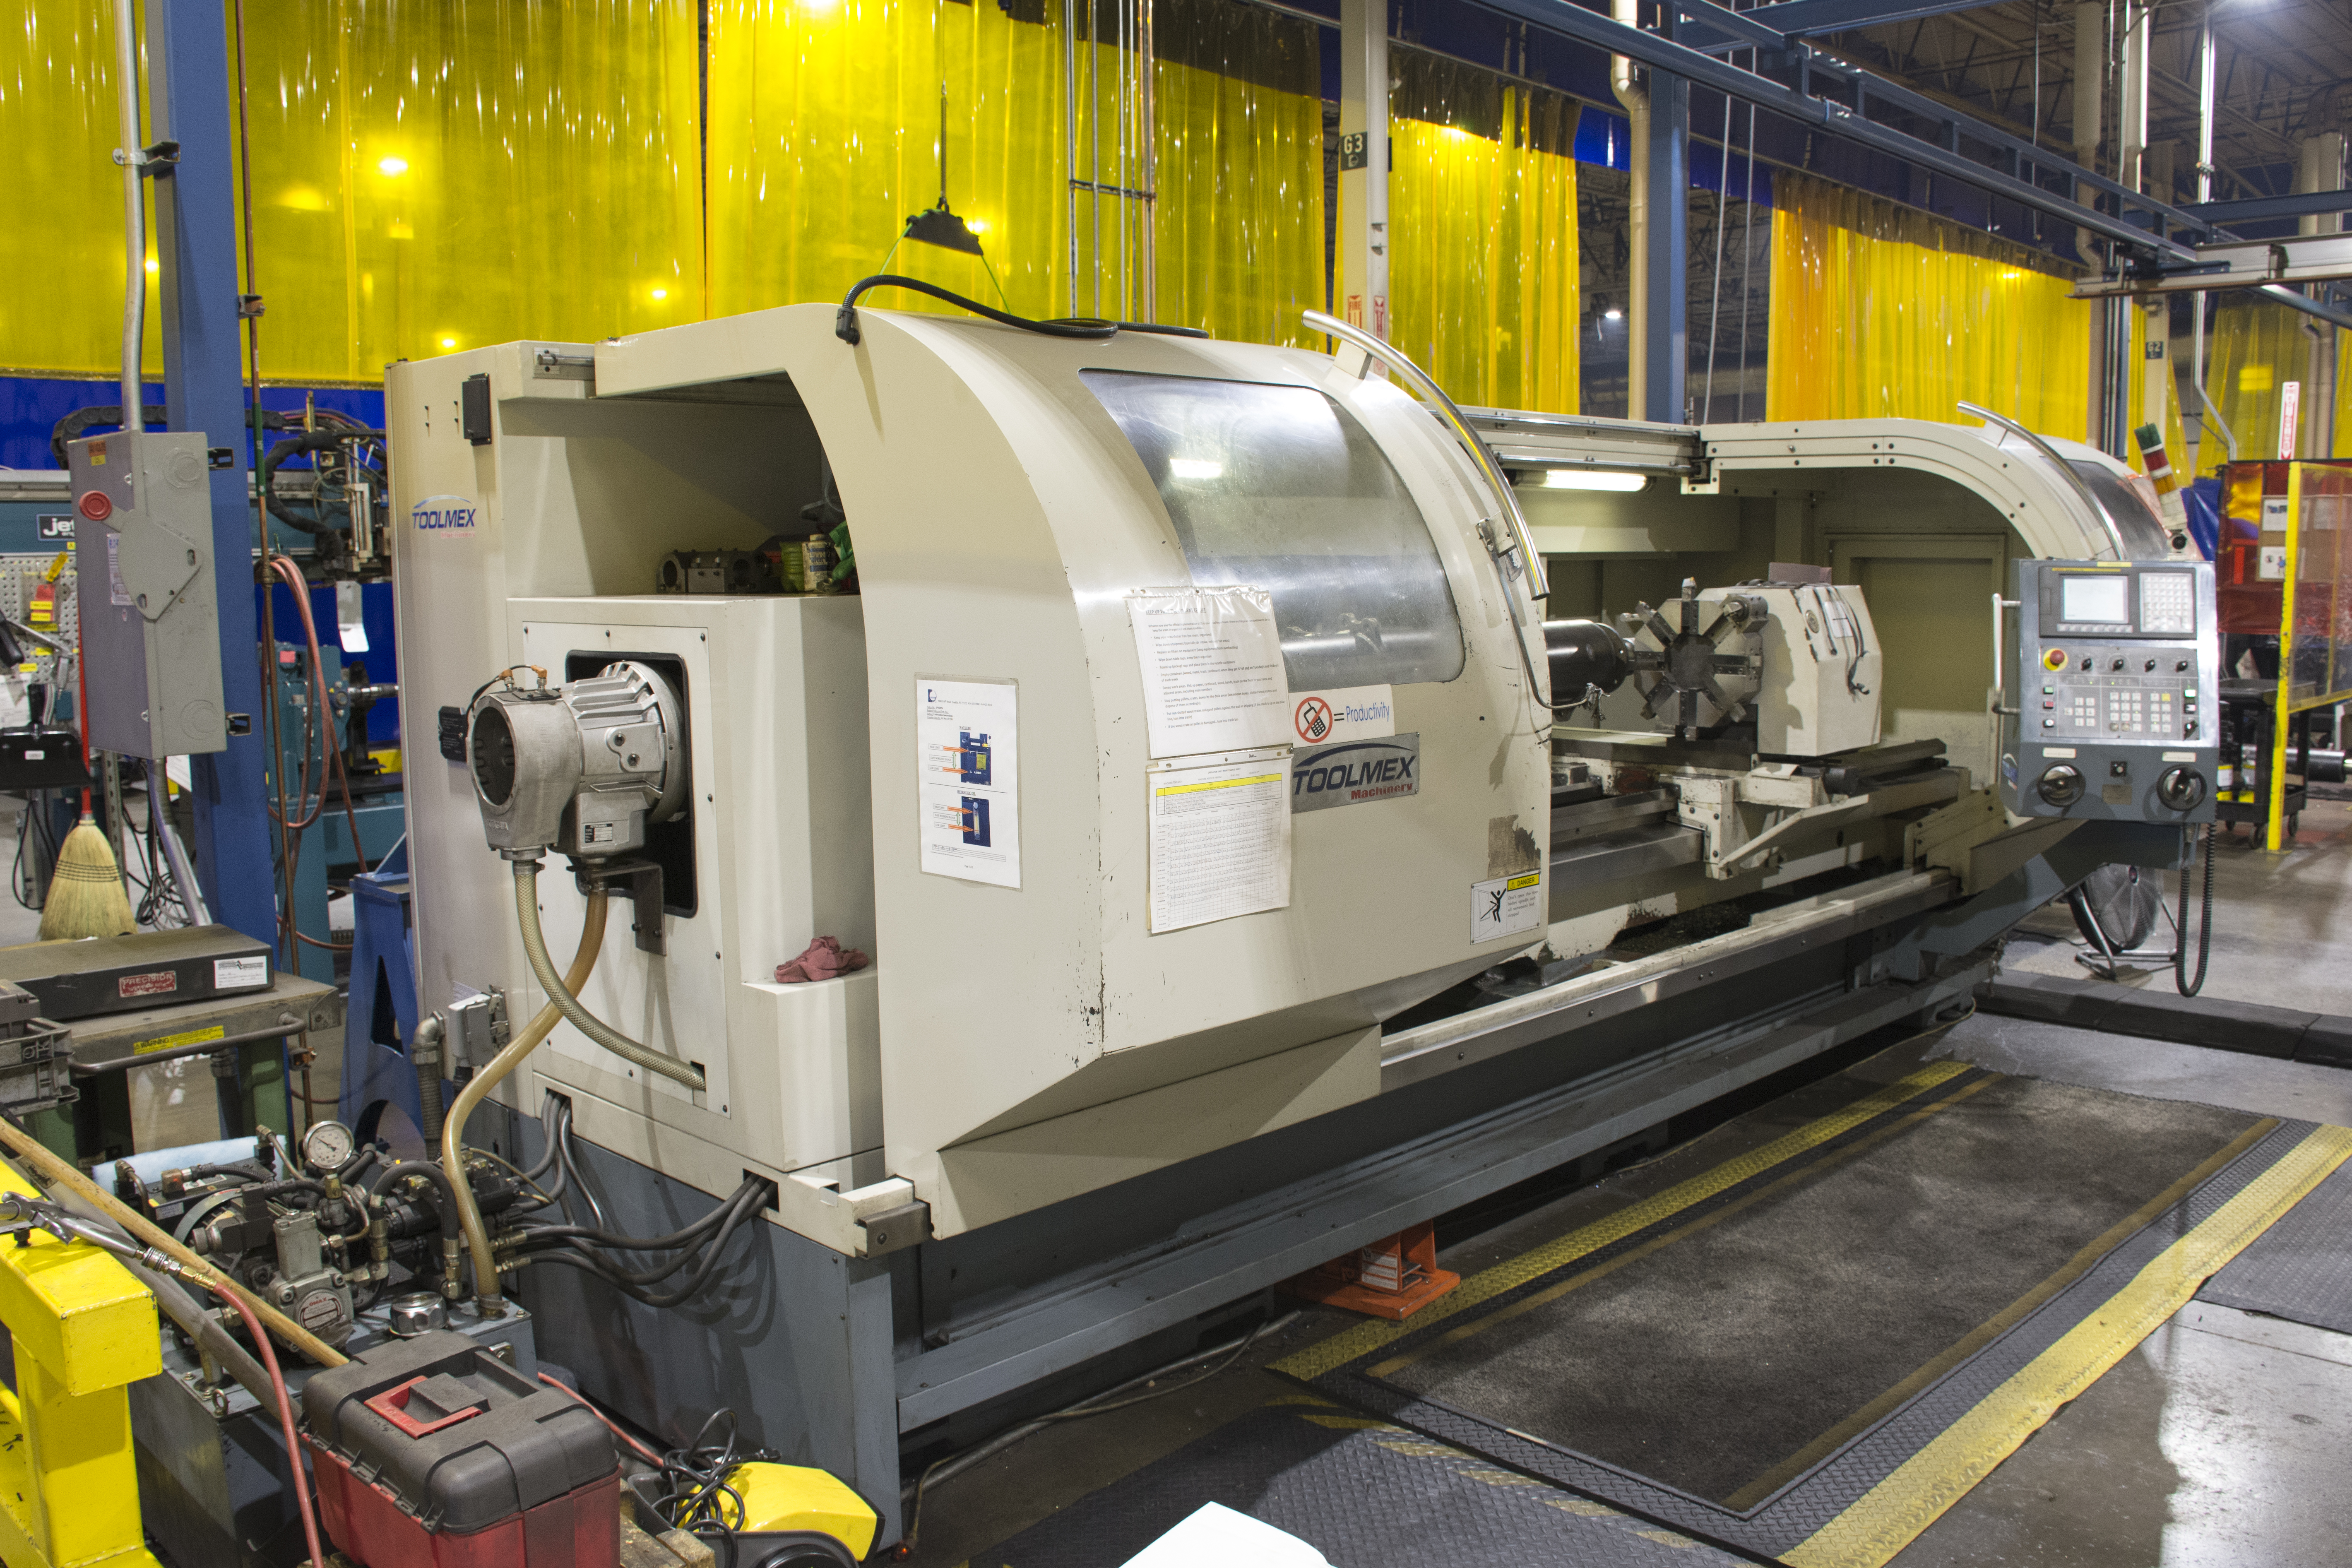 Lathes Are Essential Machining Technology